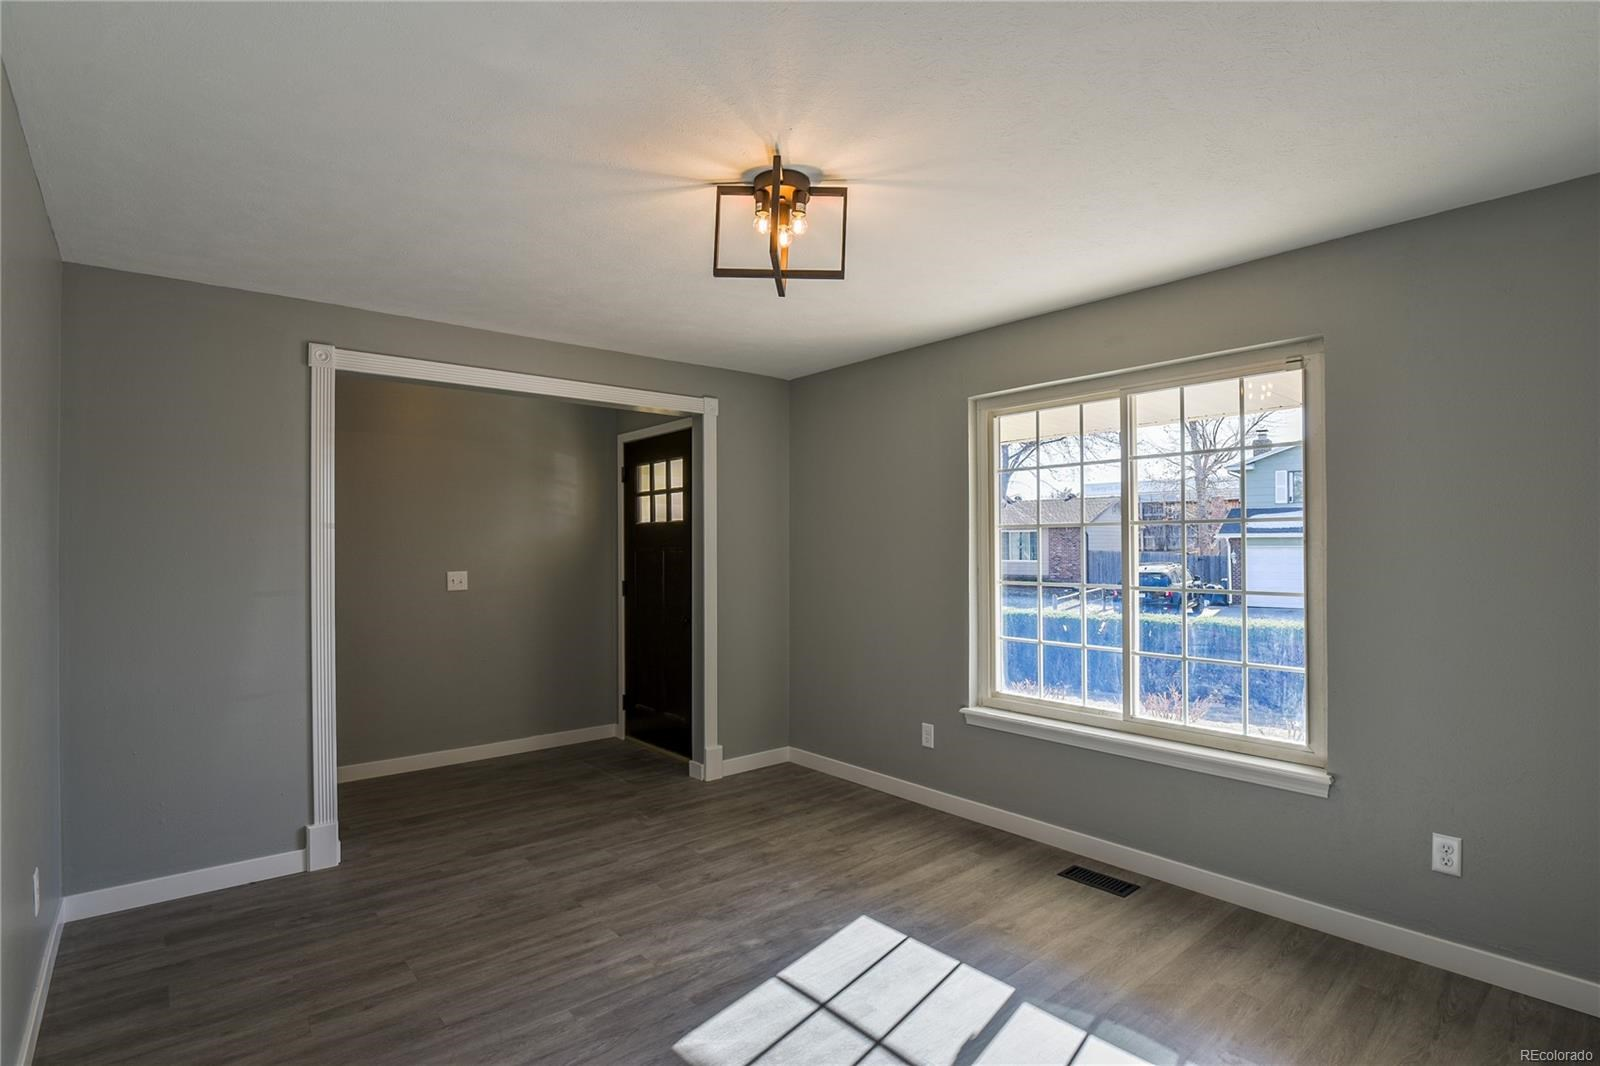 MLS# 8183776 - 12 - 2547 W 104th Circle, Westminster, CO 80234